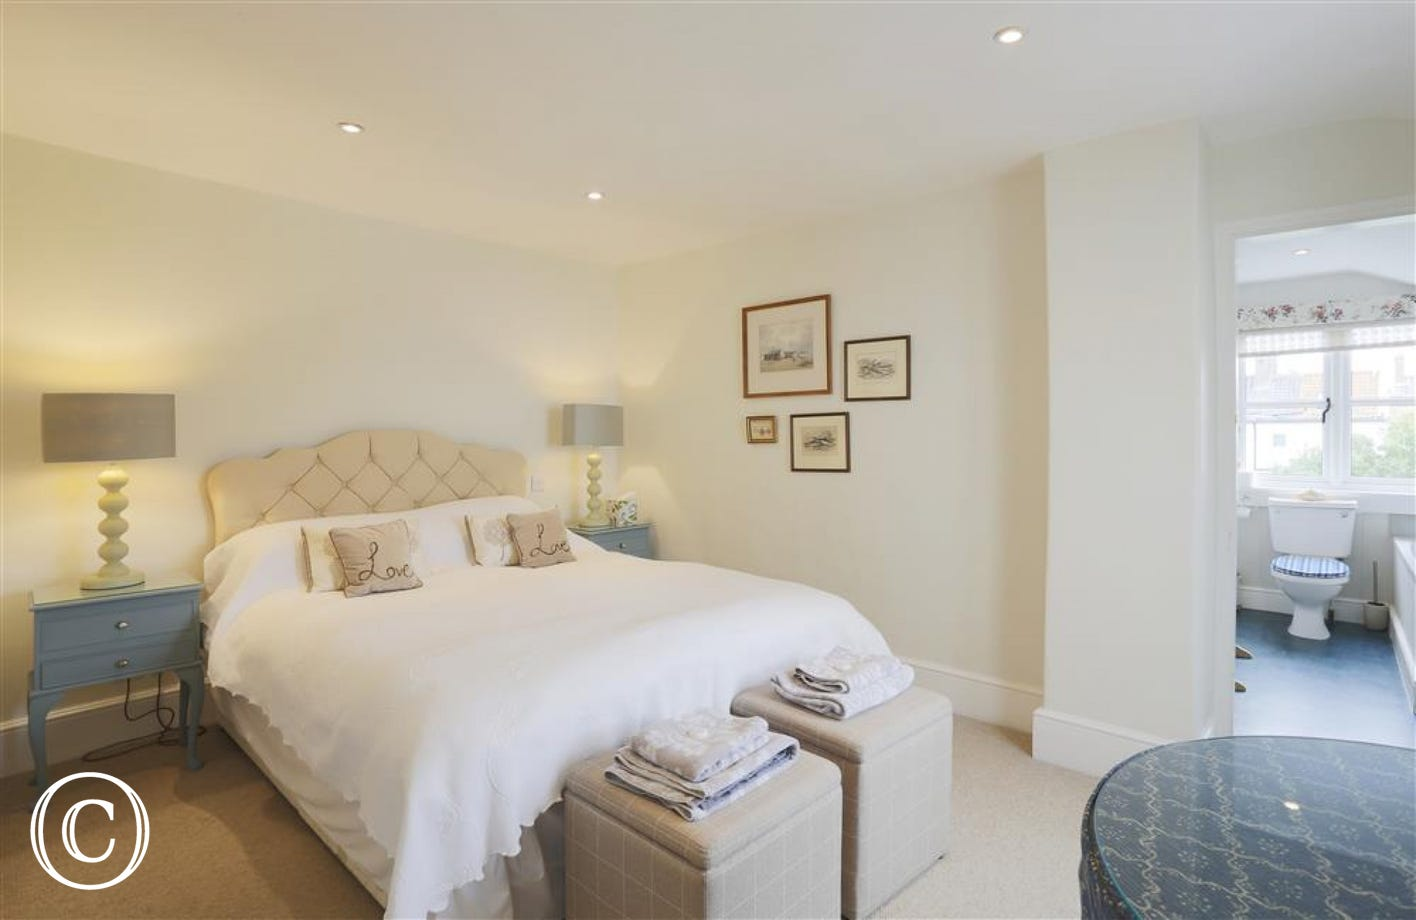 This king-size bedded room is one of three but the only one with an en-suite providing luxury and comfort.